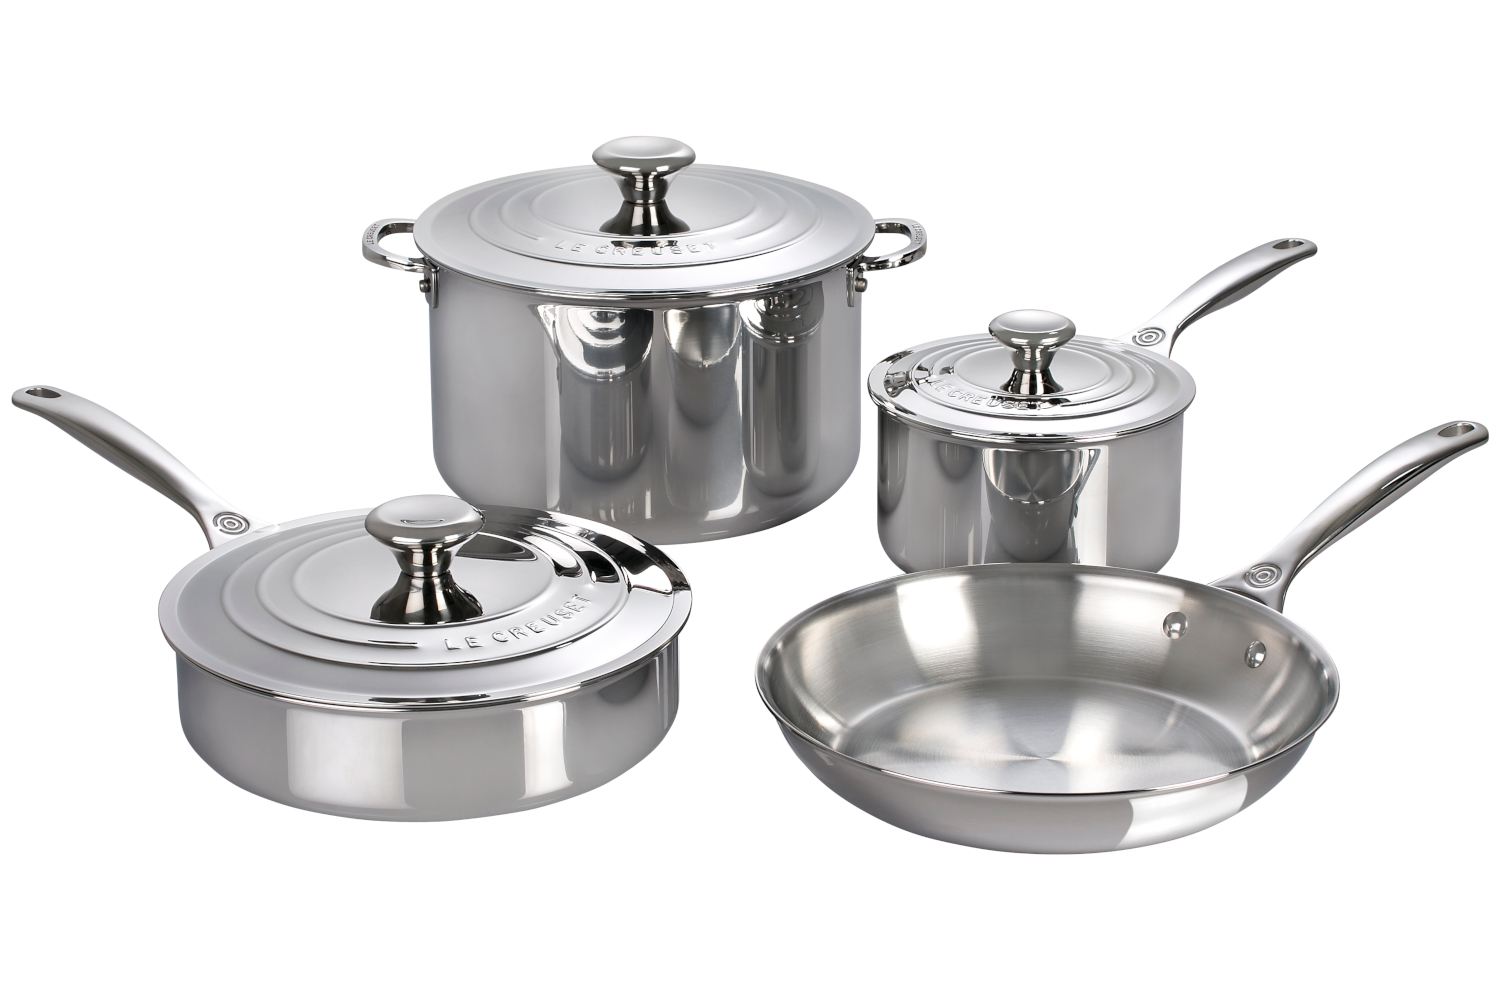 Le Creuset Premium Stainless Steel 7 Piece Cookware Set